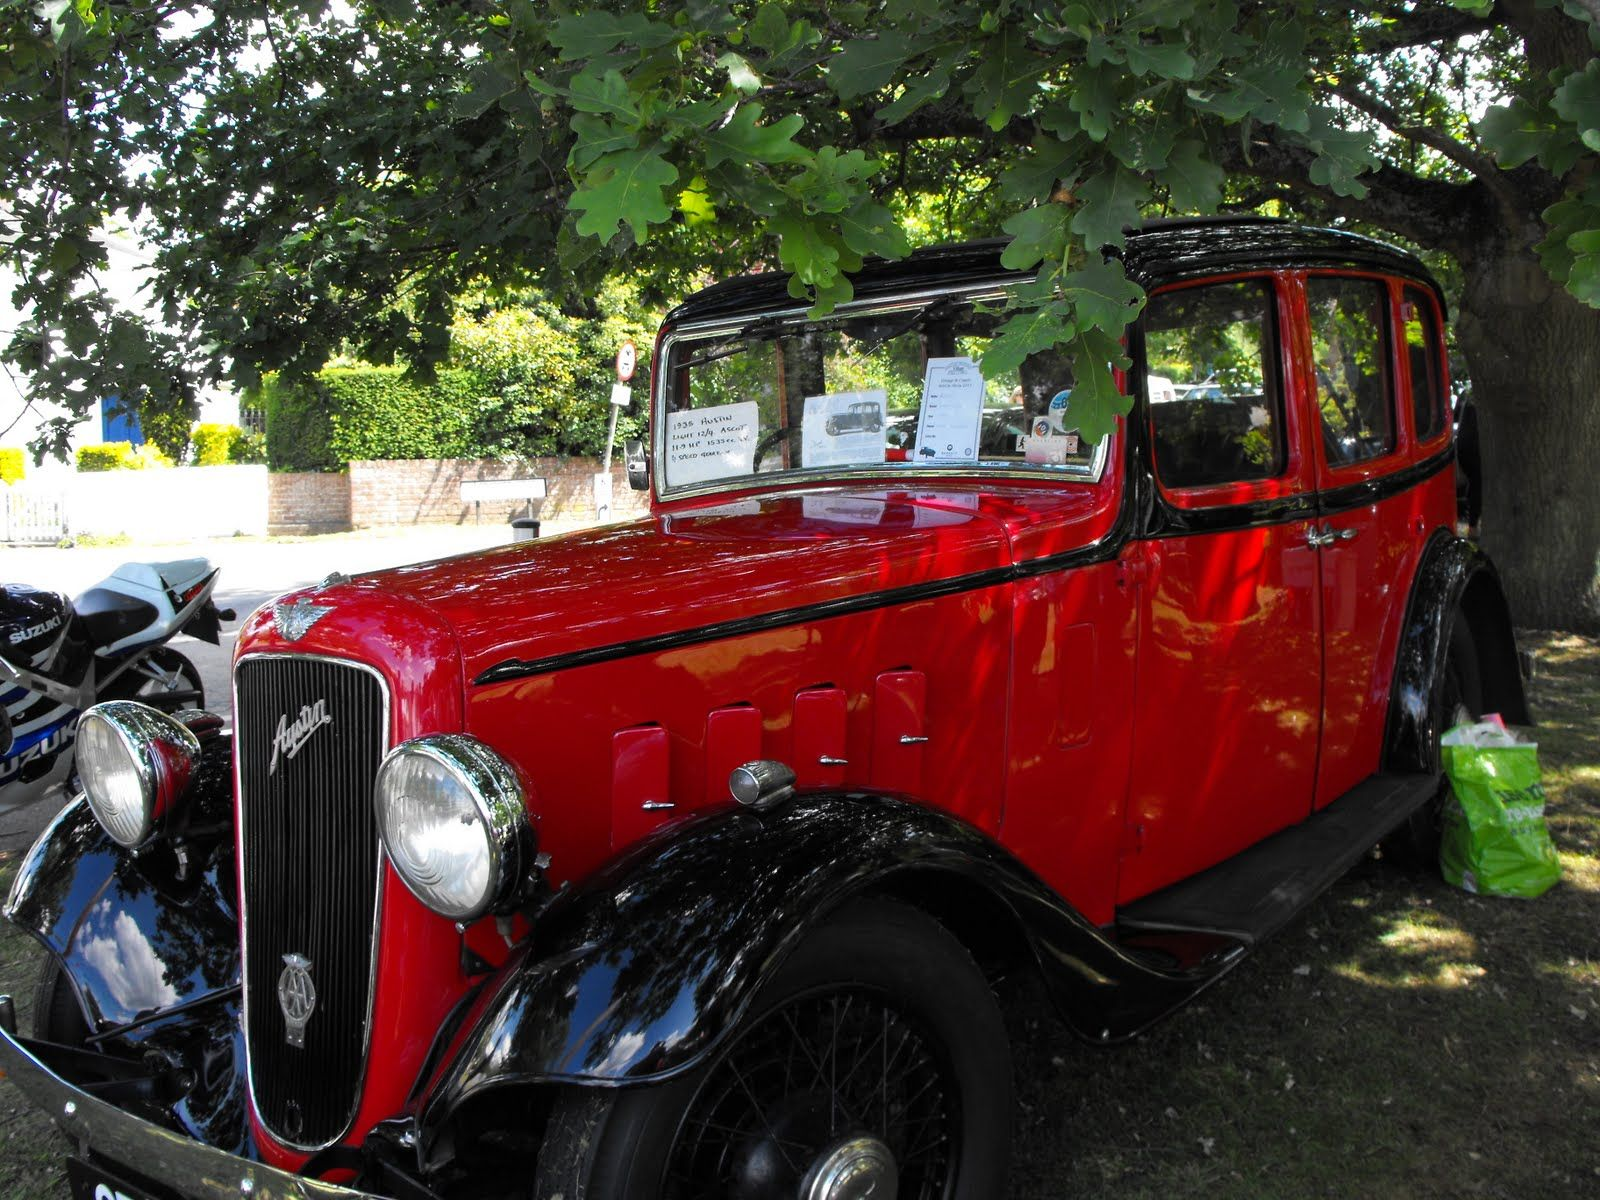 1933 Austin 7. But - it should not be parked under the tree, nes par? The little bird droppings.